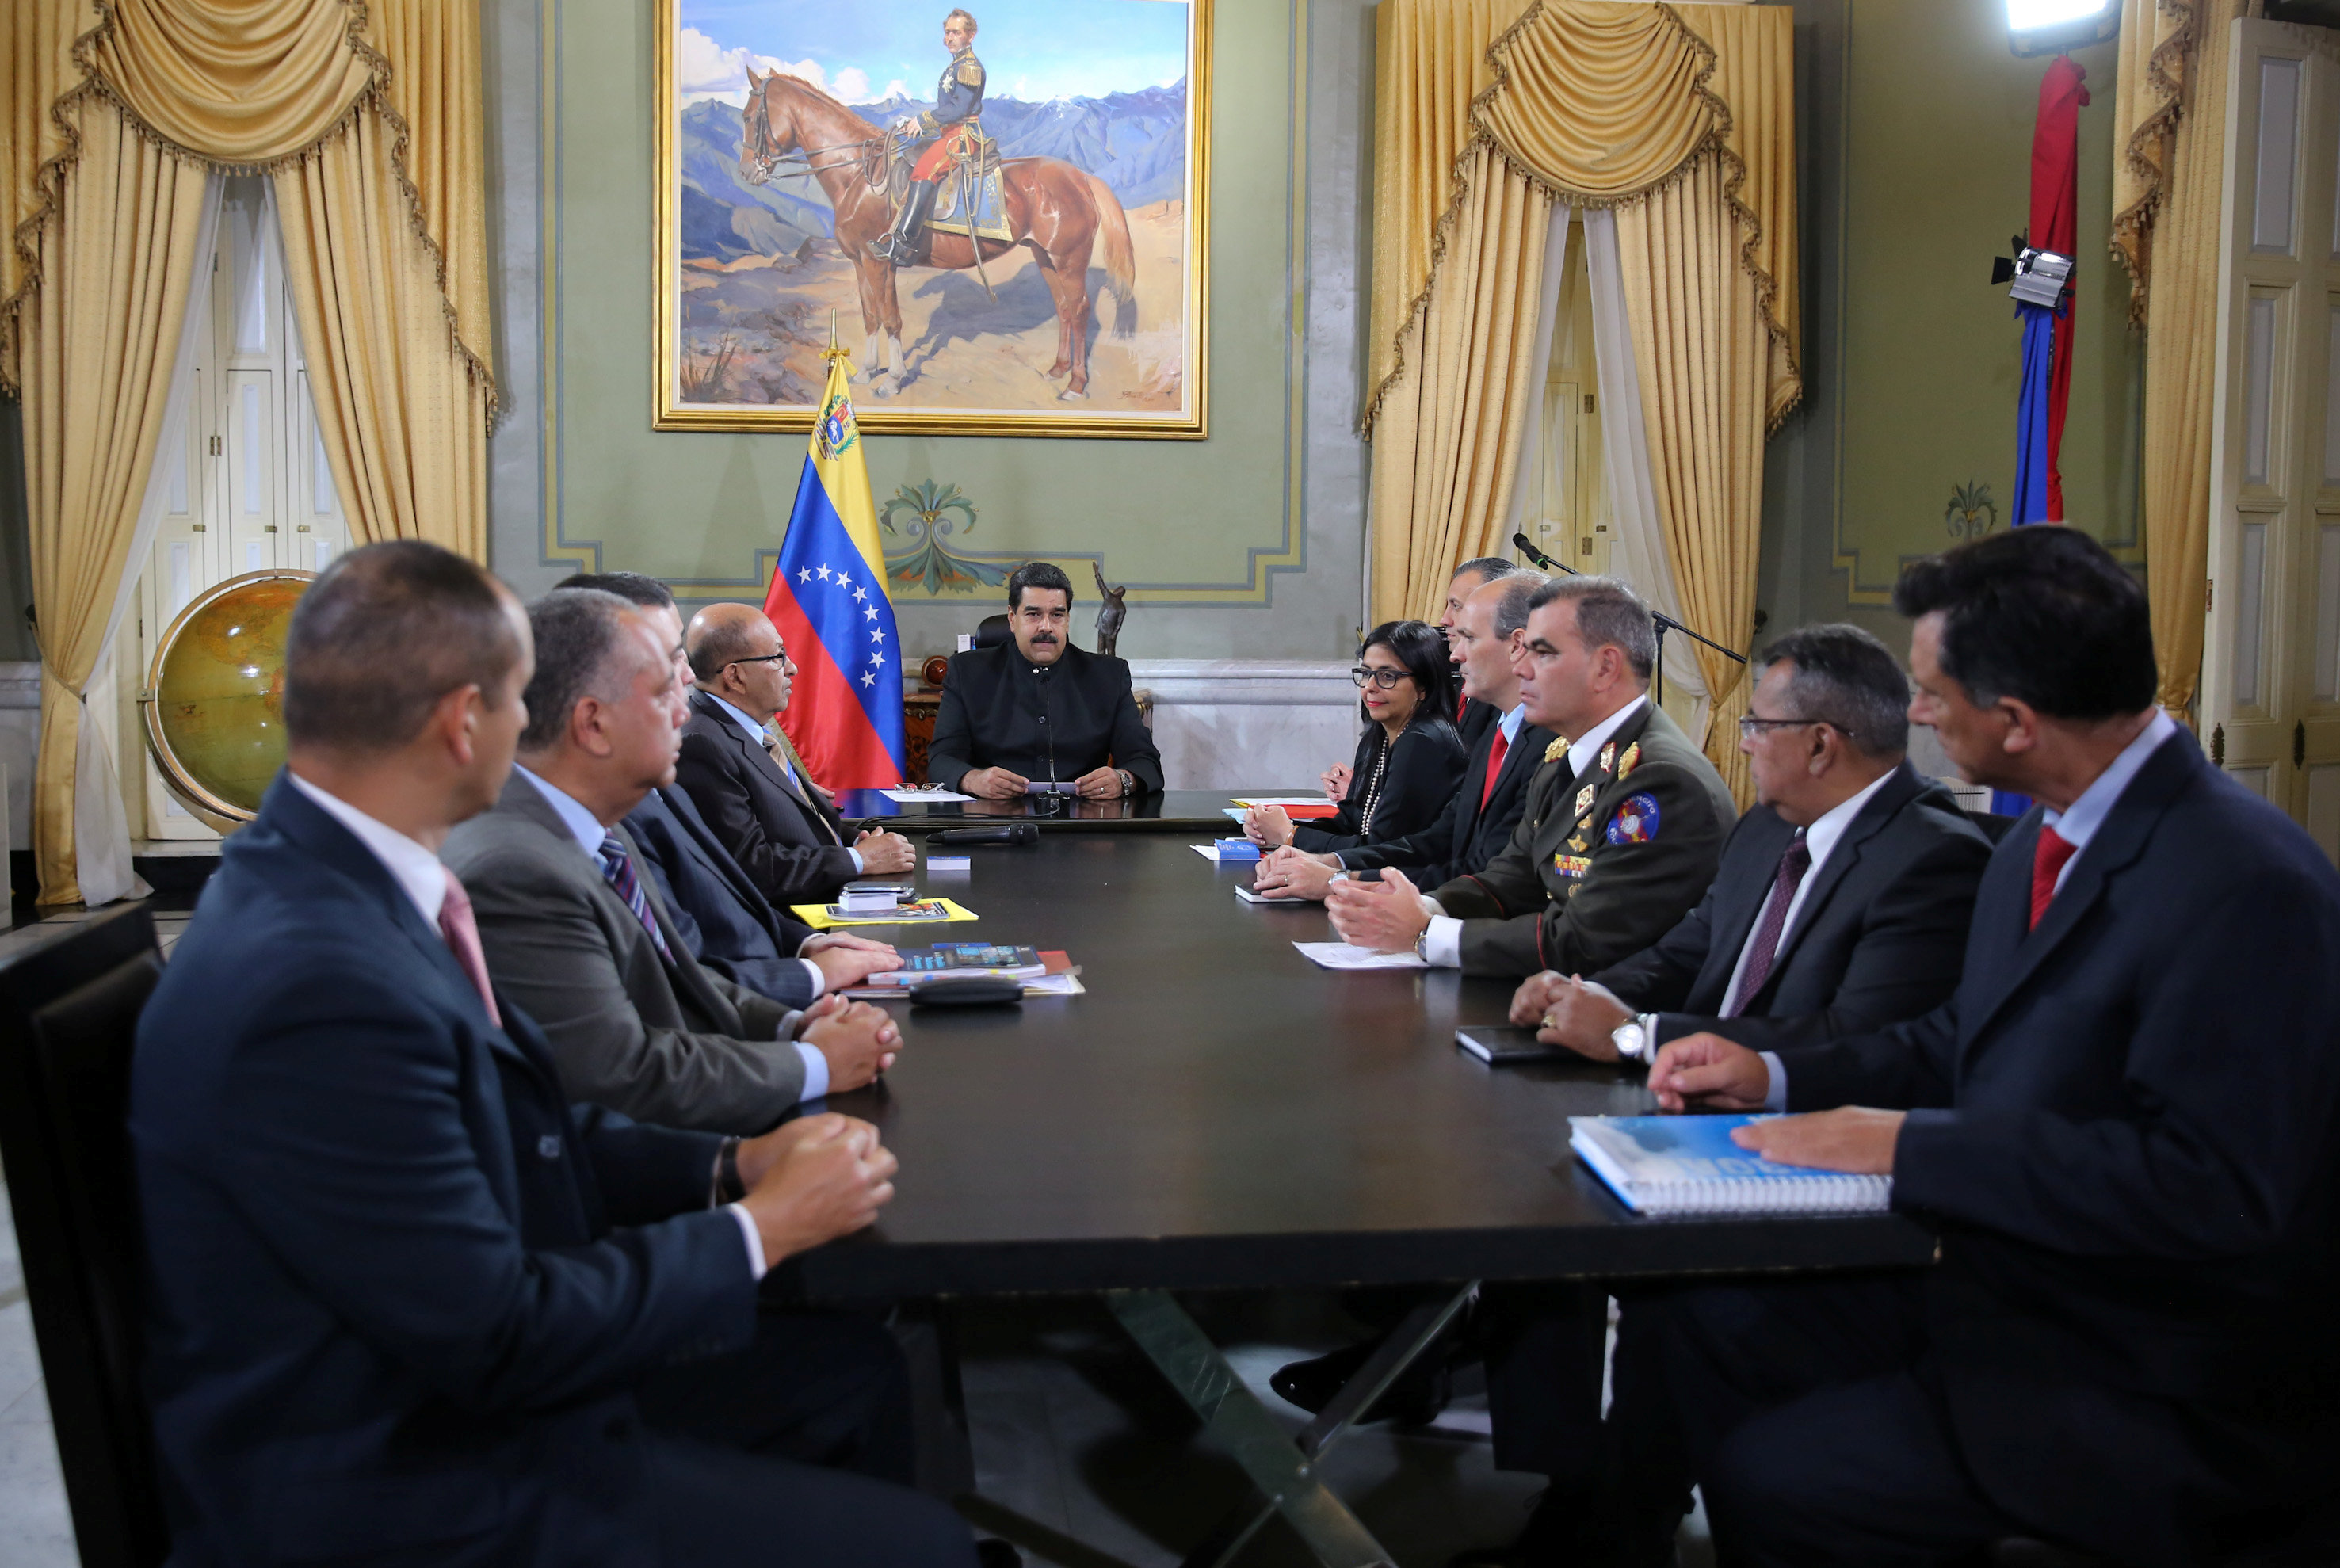 Venezuela's President Nicolas Maduro (C) attends to a meeting with ministers and other Venezuelan authorities at Miraflores Palace in Caracas, Venezuela April 1, 2017. (Miraflores Palace/Handout via REUTERS)